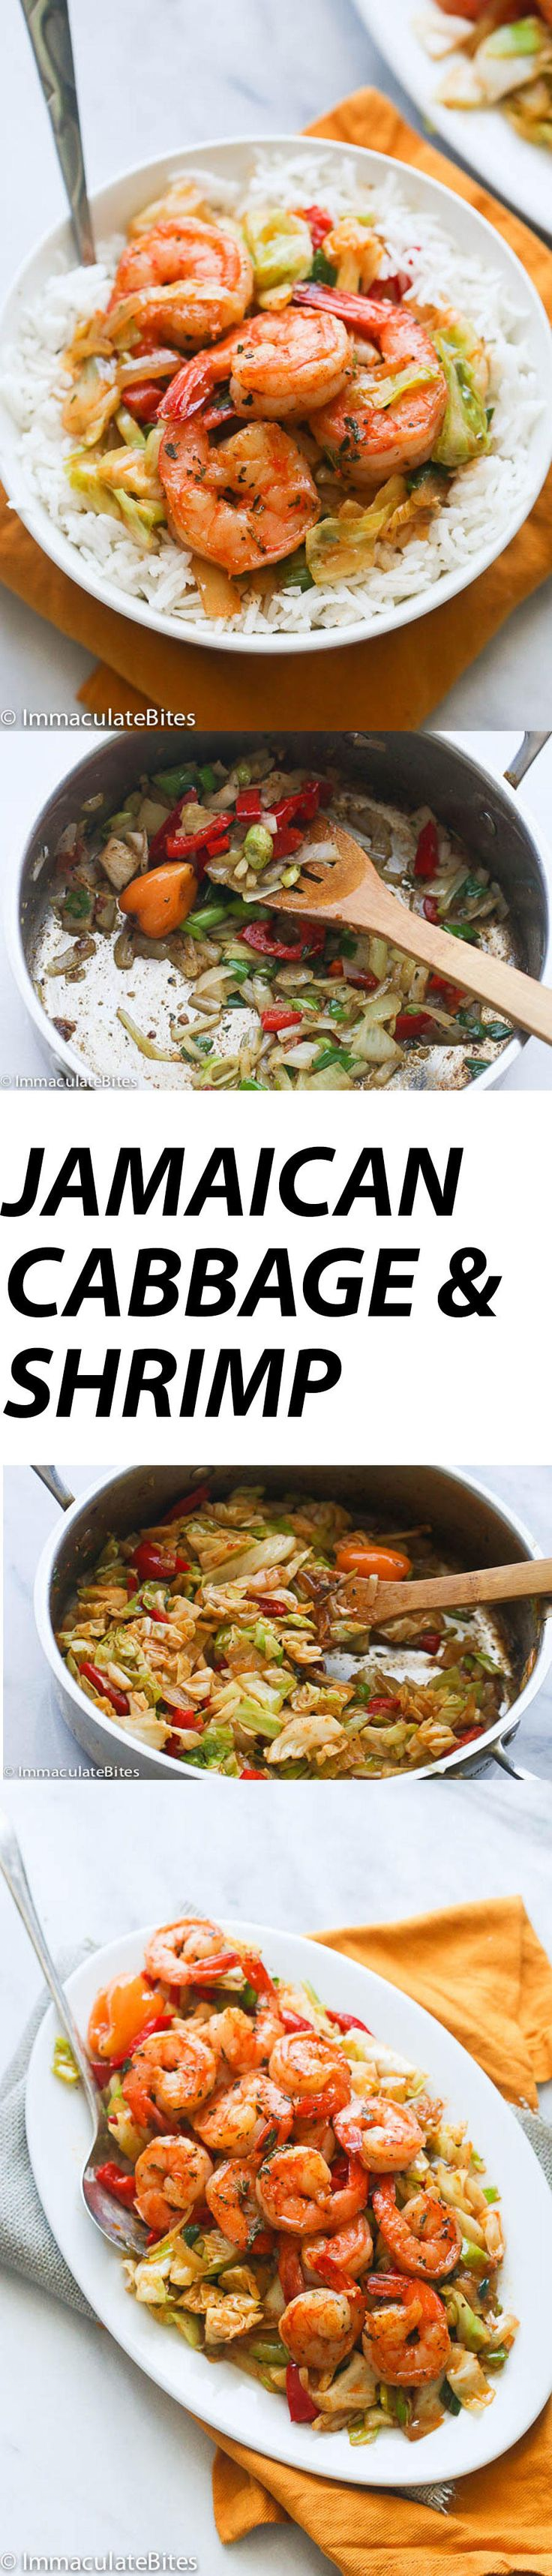 Jamaican Cabbage and Shrimp-A quick stir fried cabbage seasoned with aromatic spices  and topped with sauté shrimp . A Delicious  side dish to accompany any meal.